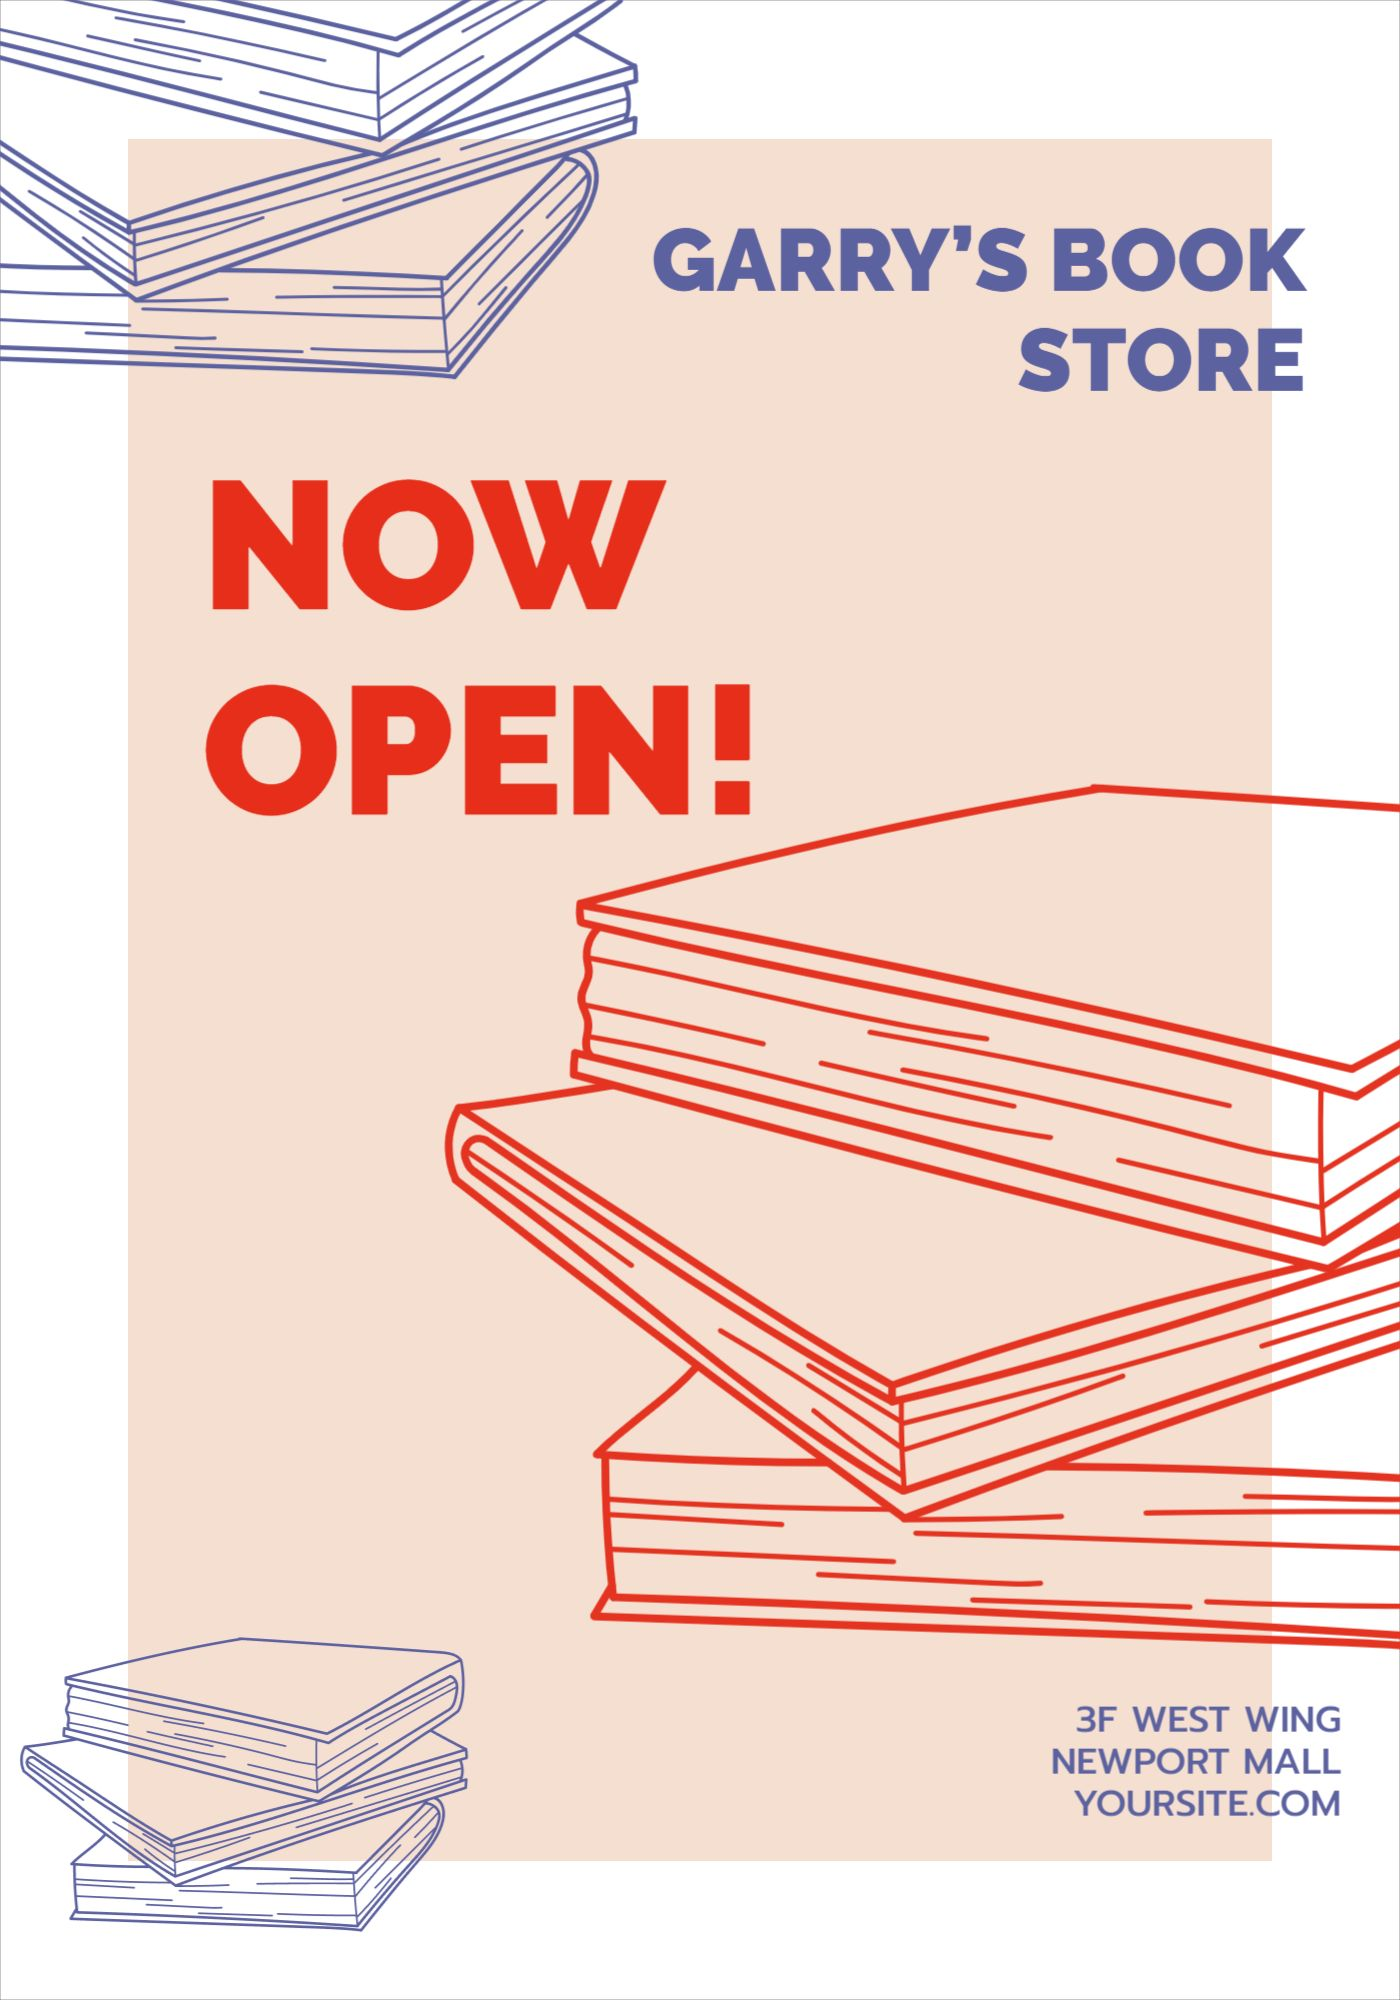 Book Store Opening Flyer Template